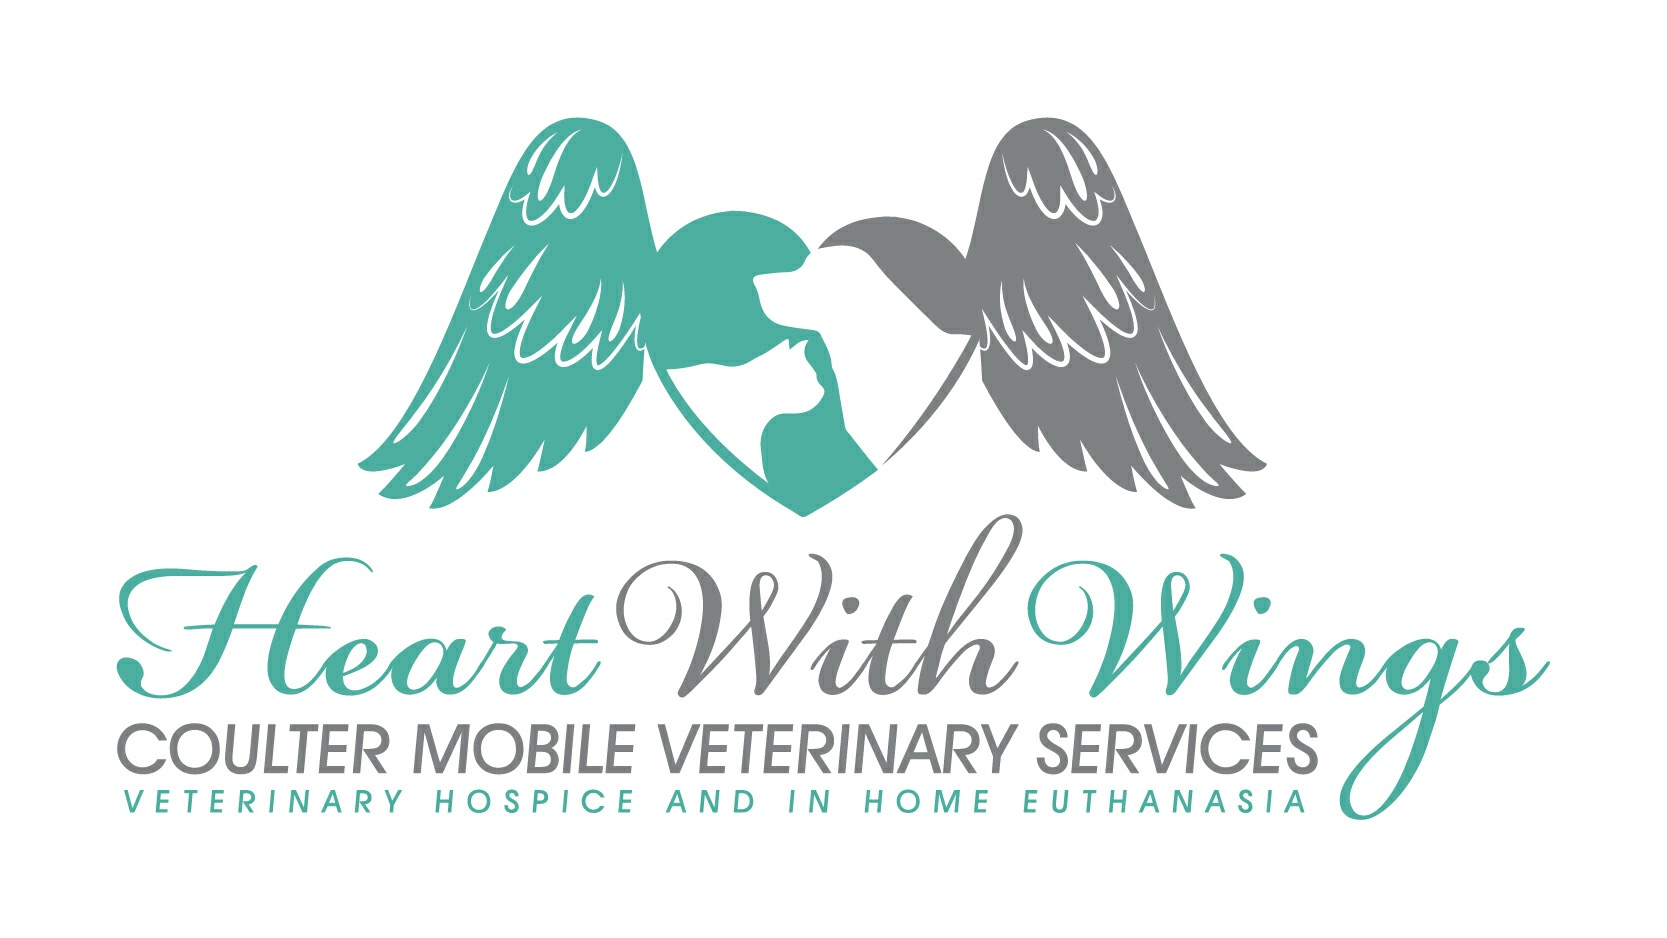 Coulter Mobile Veterinary Services